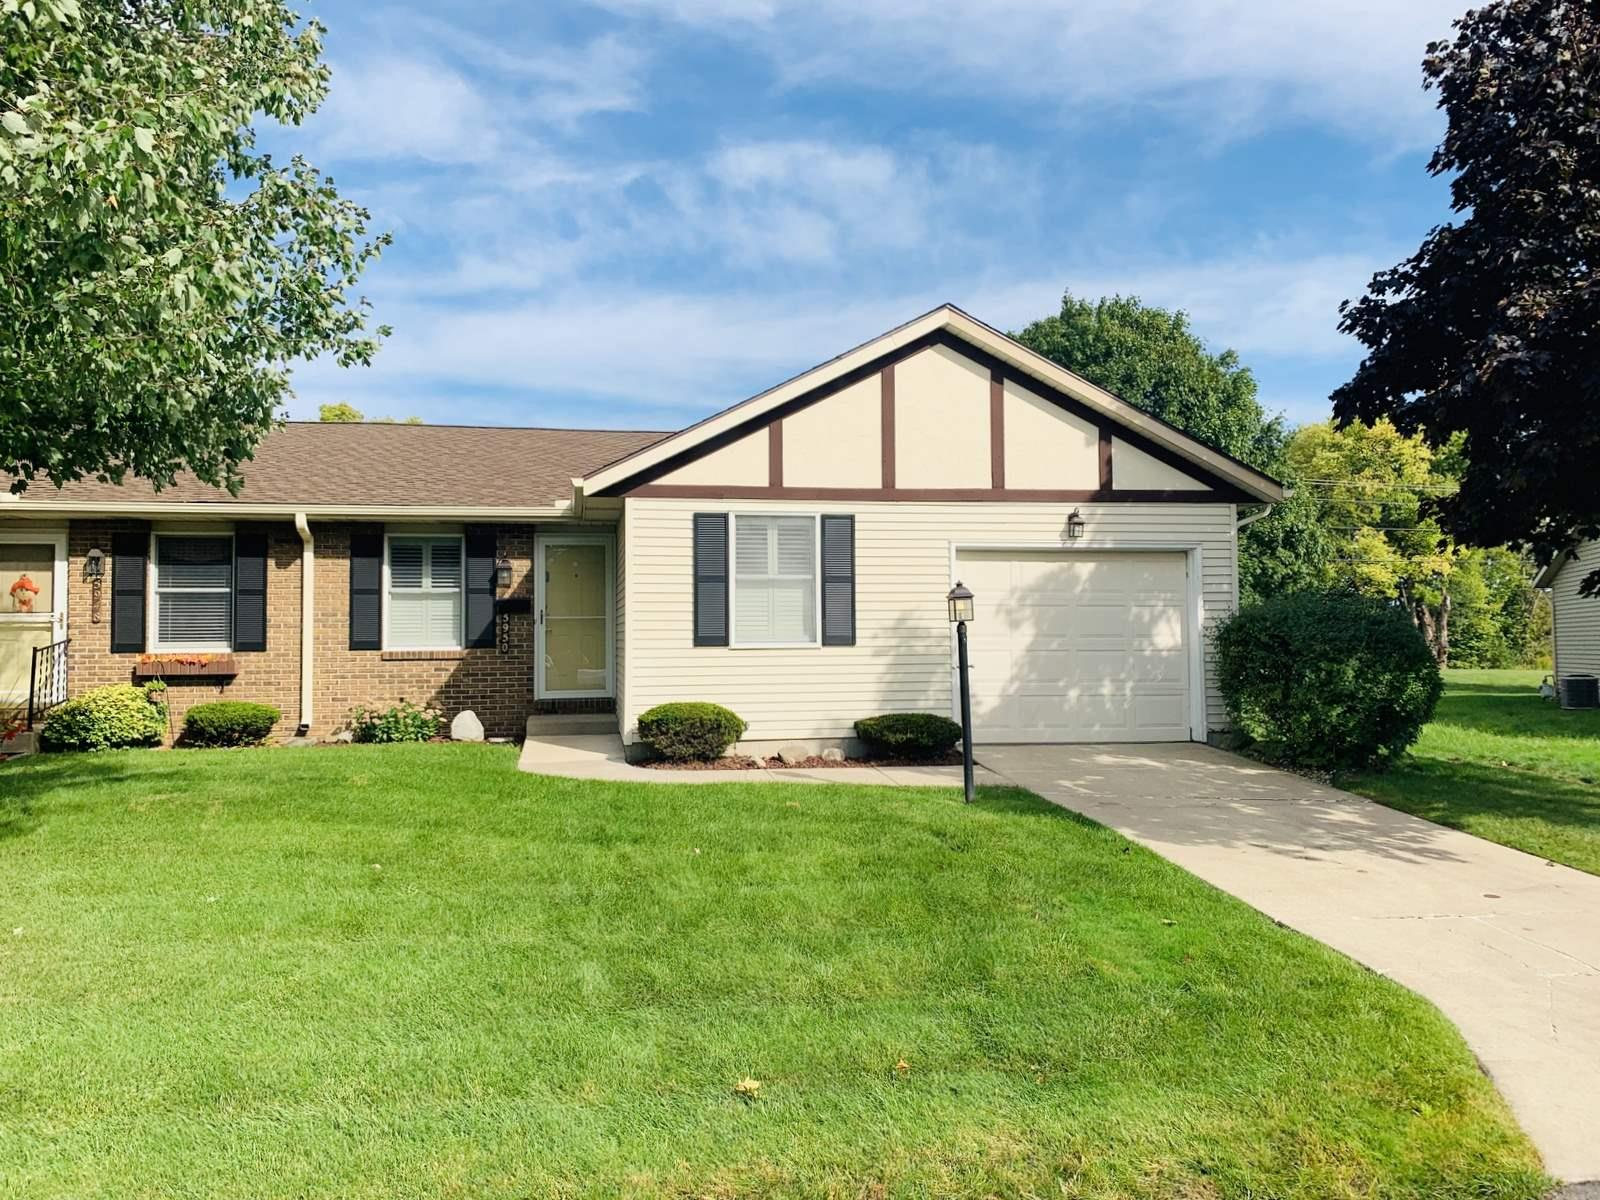 5950 Barcus Way South Bend, IN 46614